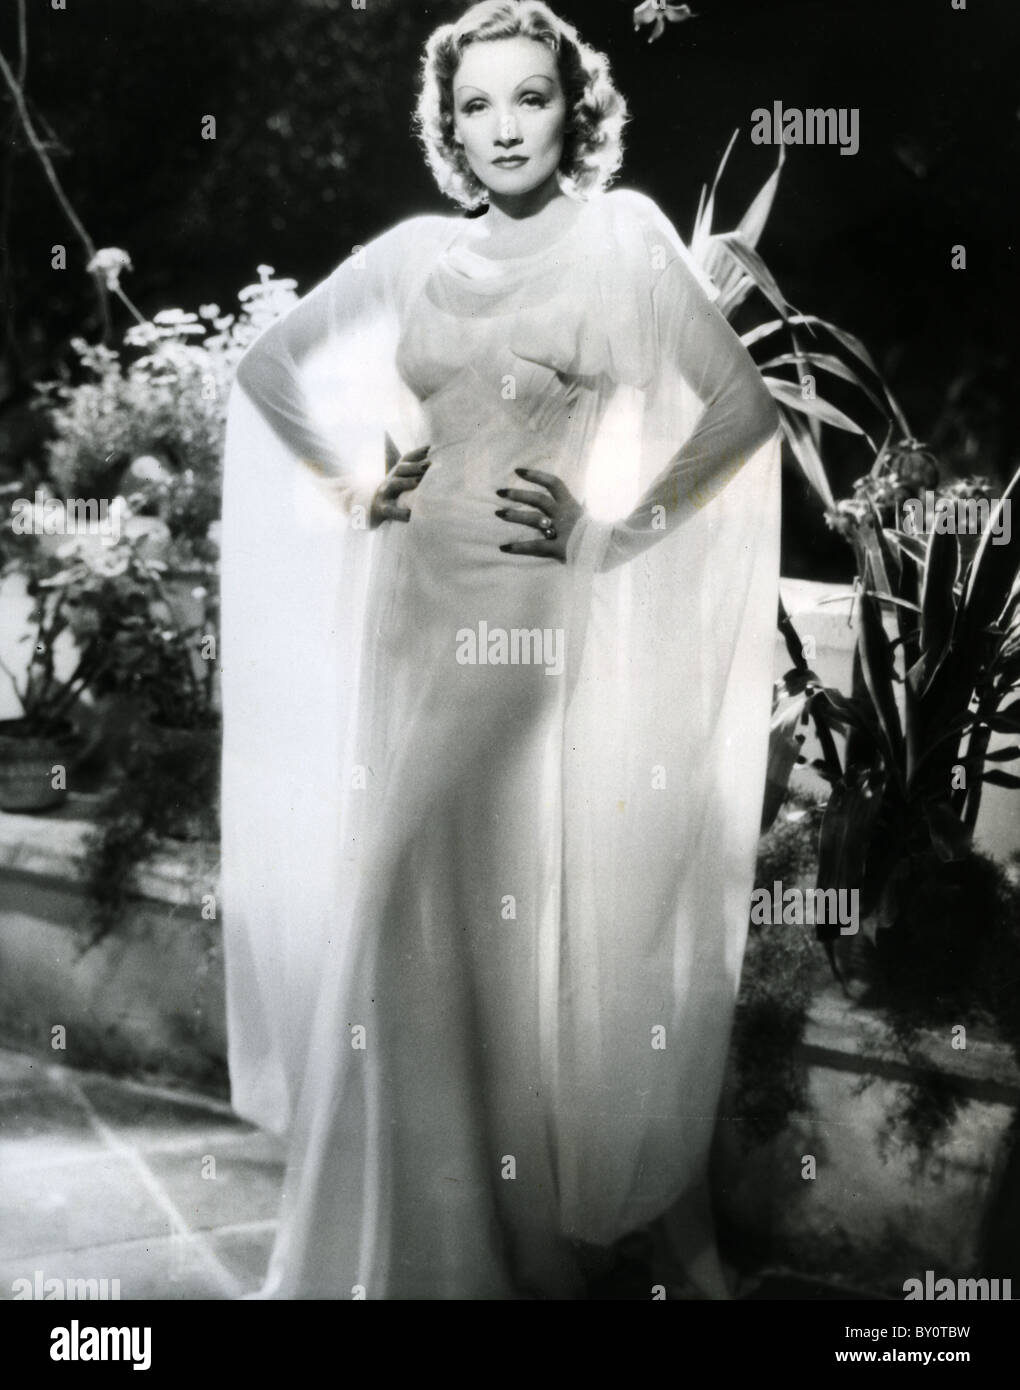 marlene dietrich 1901 1992 grman born film actress about 1938